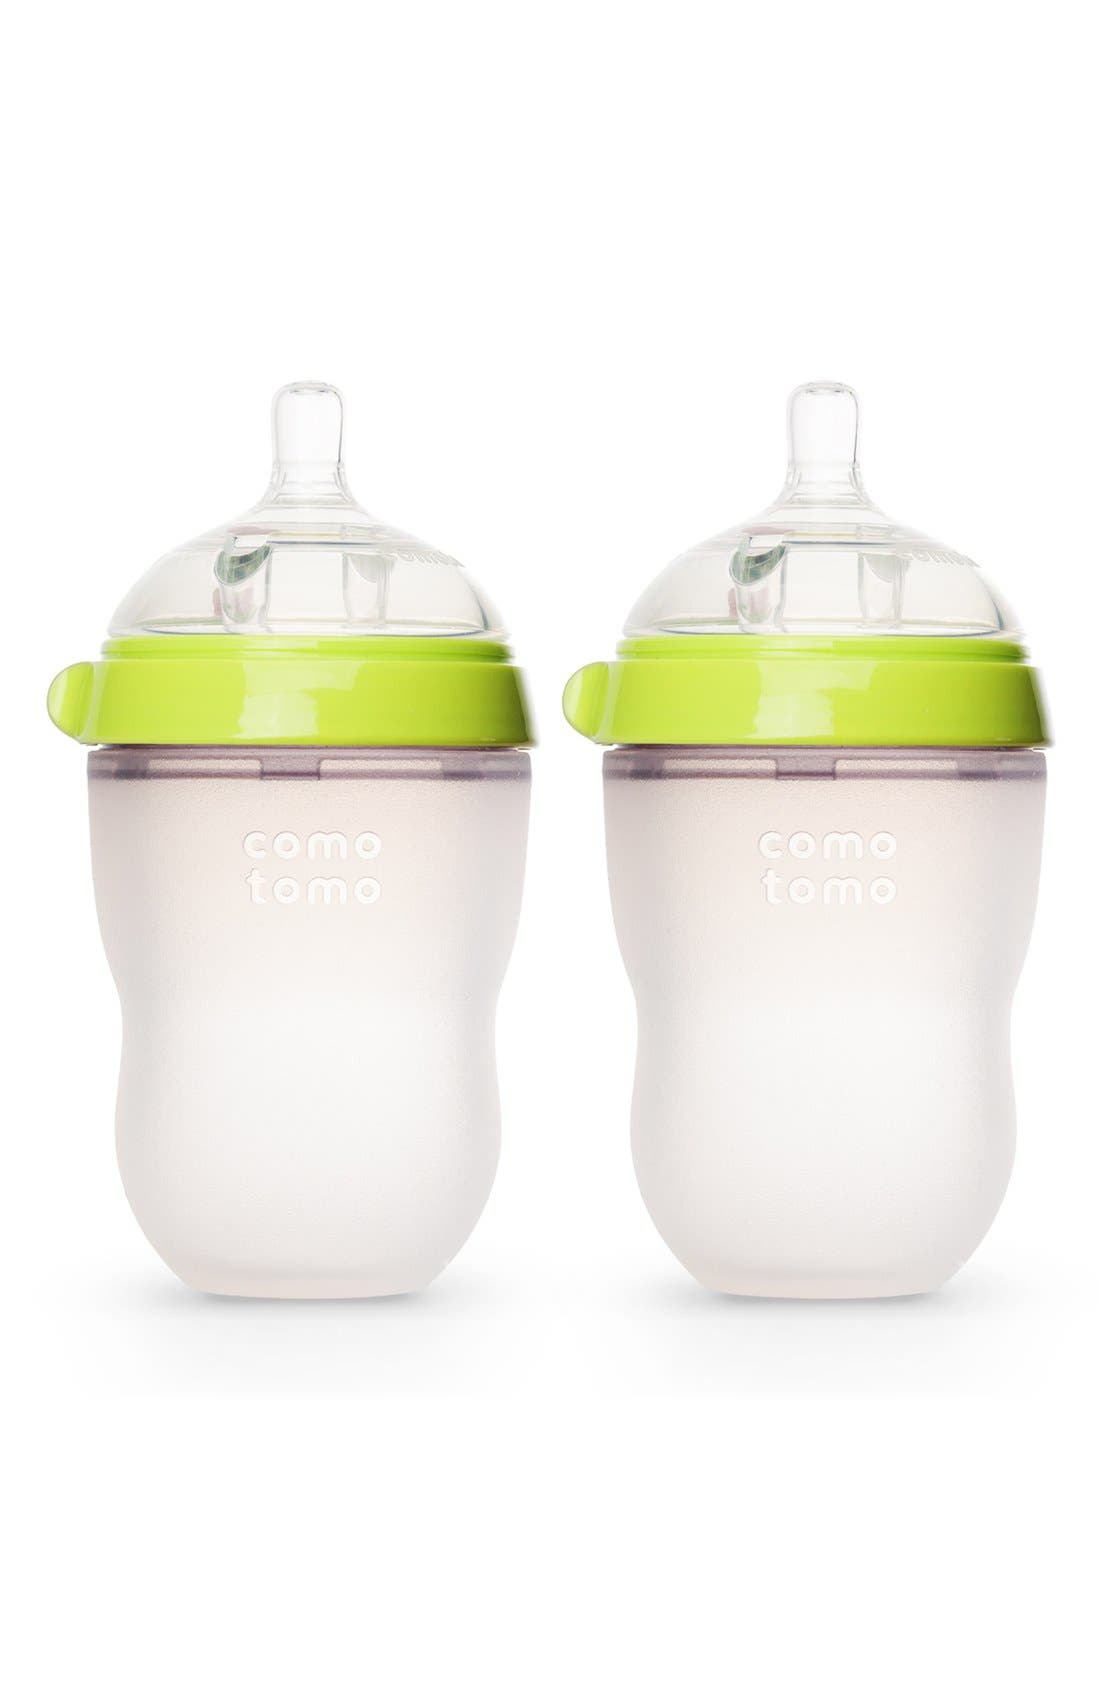 COMOTOMO BABY Comotomo Set of 2 Baby Bottles